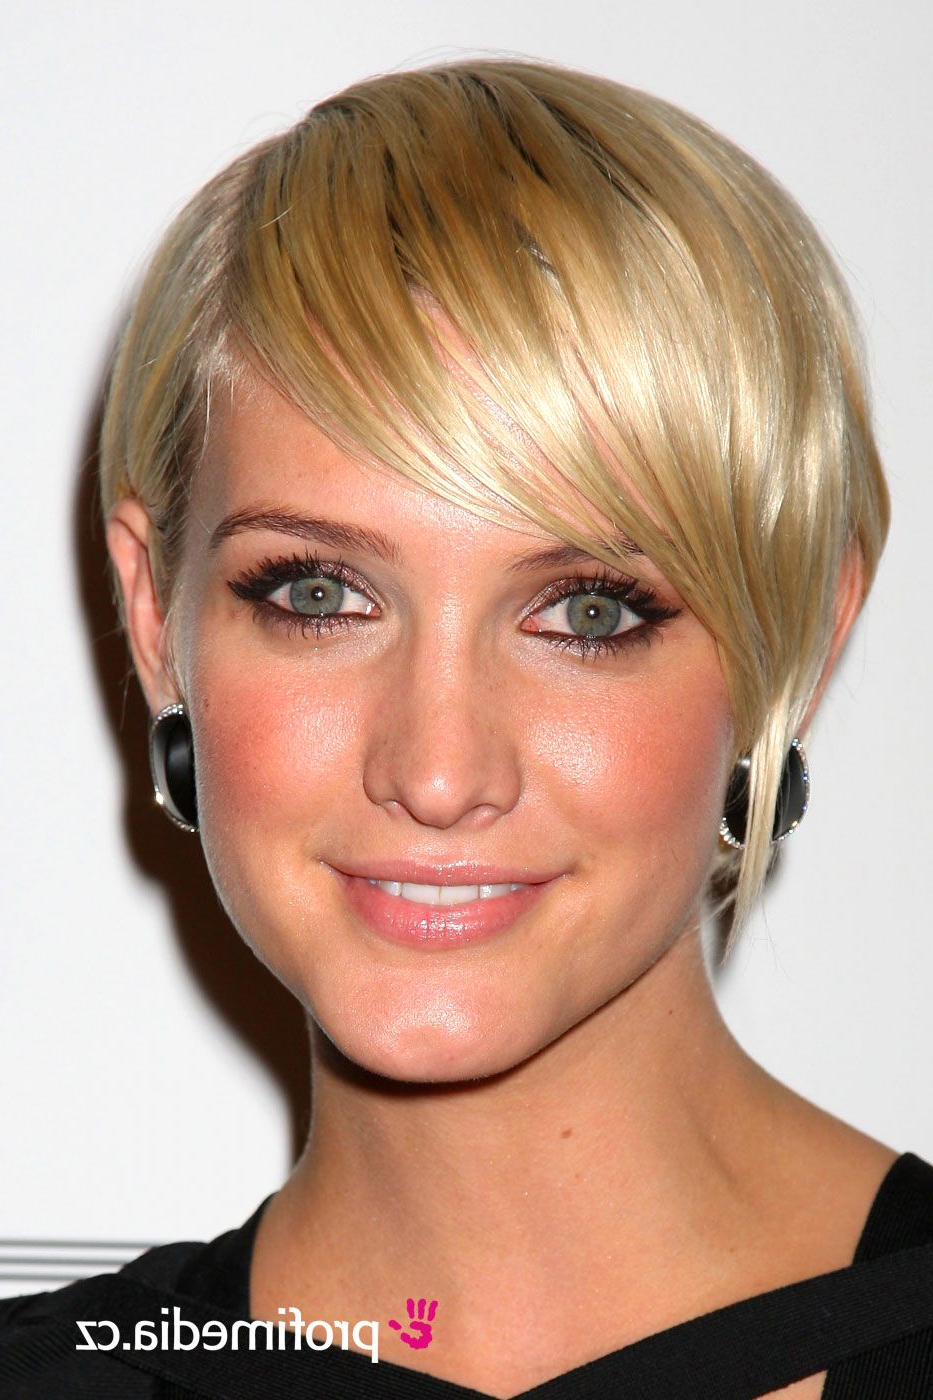 Ashlee Simpson Wentz | Hair | Pinterest | Ashlee Simpson And Short Within Ashlee Simpson Short Hairstyles (Gallery 7 of 25)